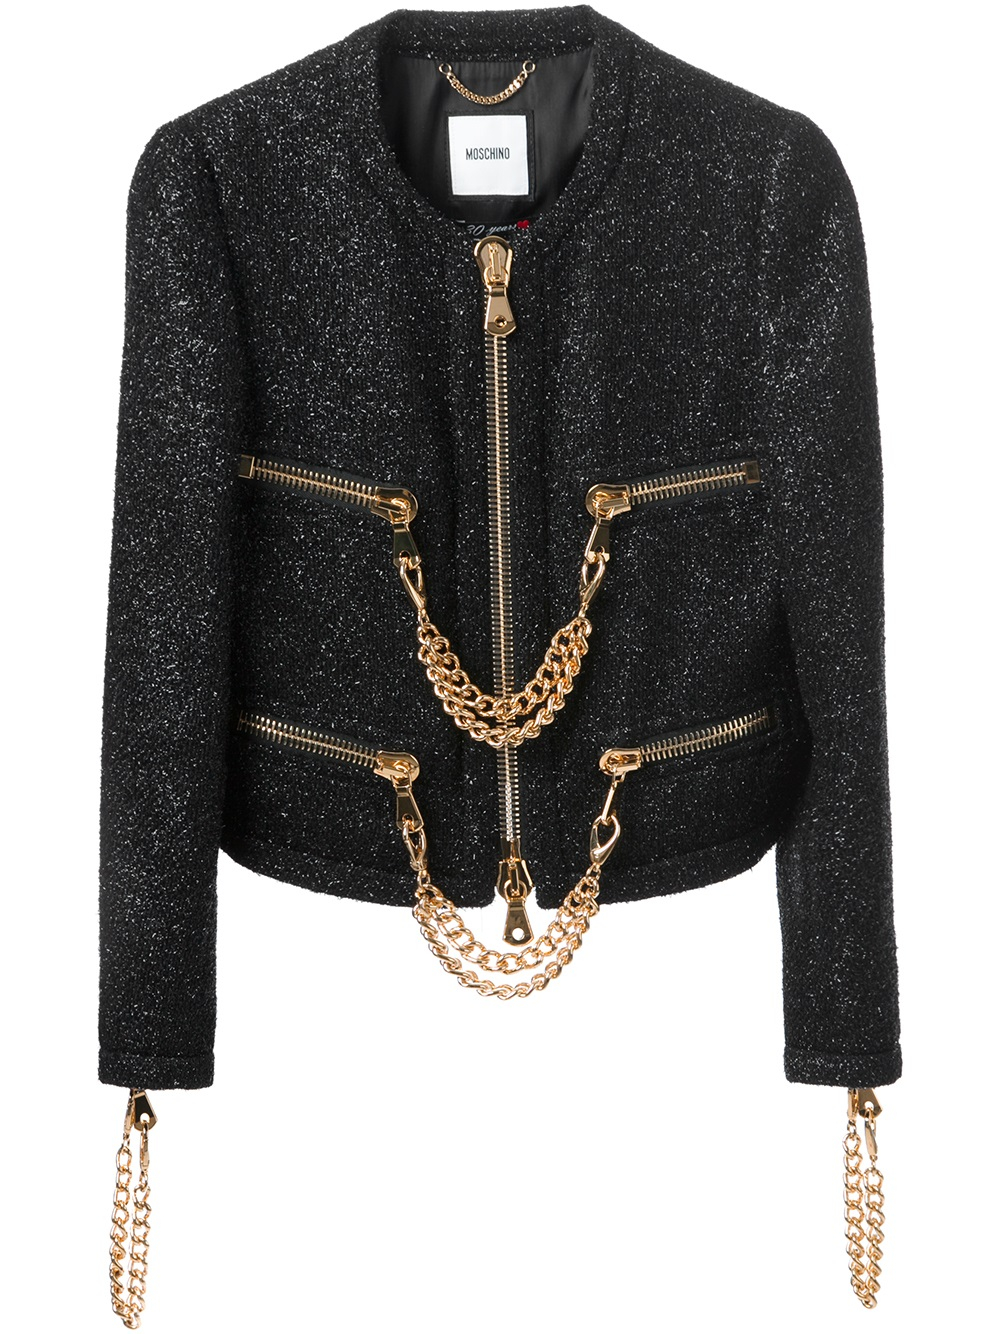 Moschino Quilted Leather Jacket in Black